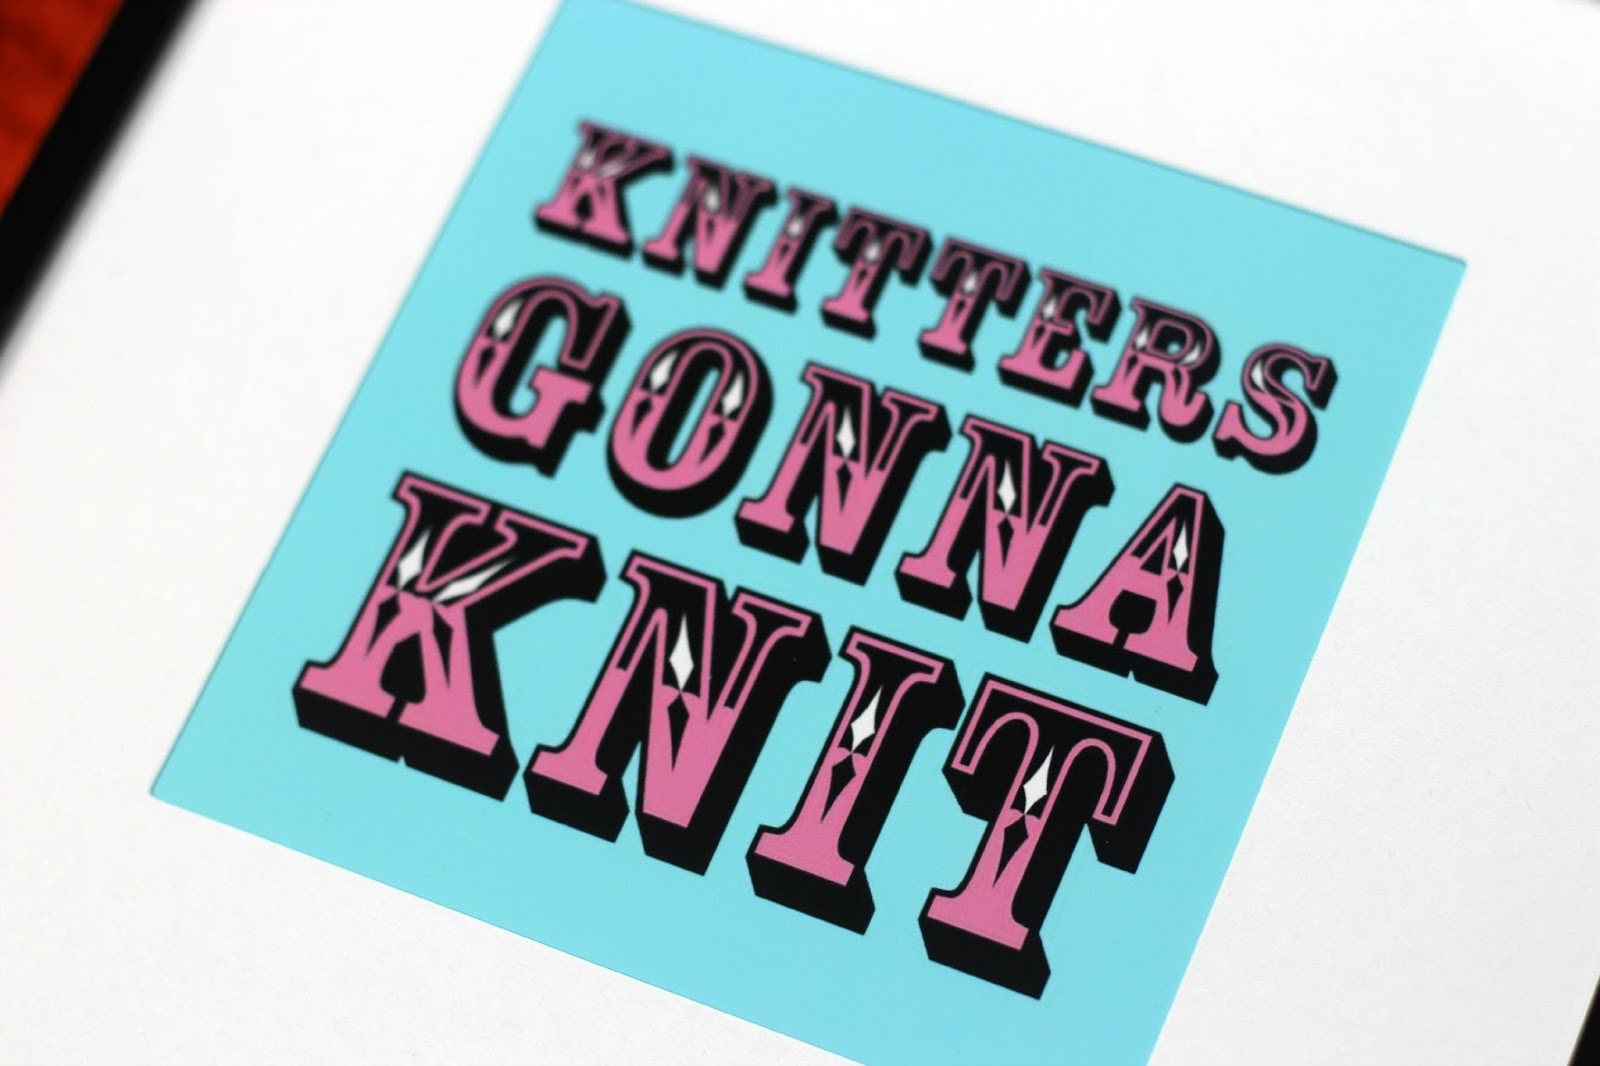 cobberson knitters gonna knit turquoise print